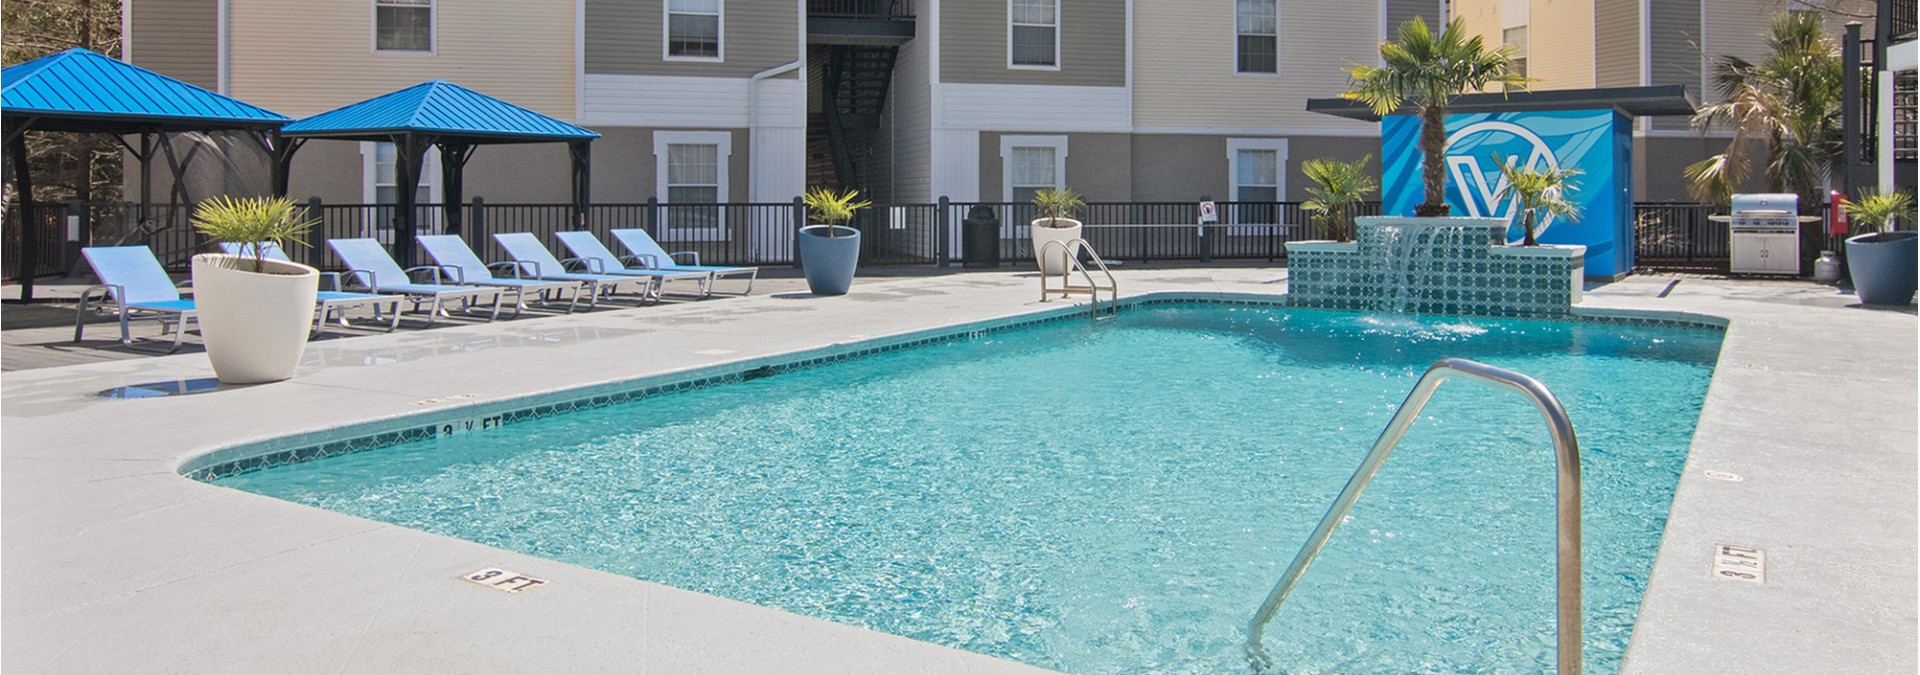 Sparkling Pool | Luxury 1 Bedroom Tallahassee Apartments | The Venetian Student Living 1